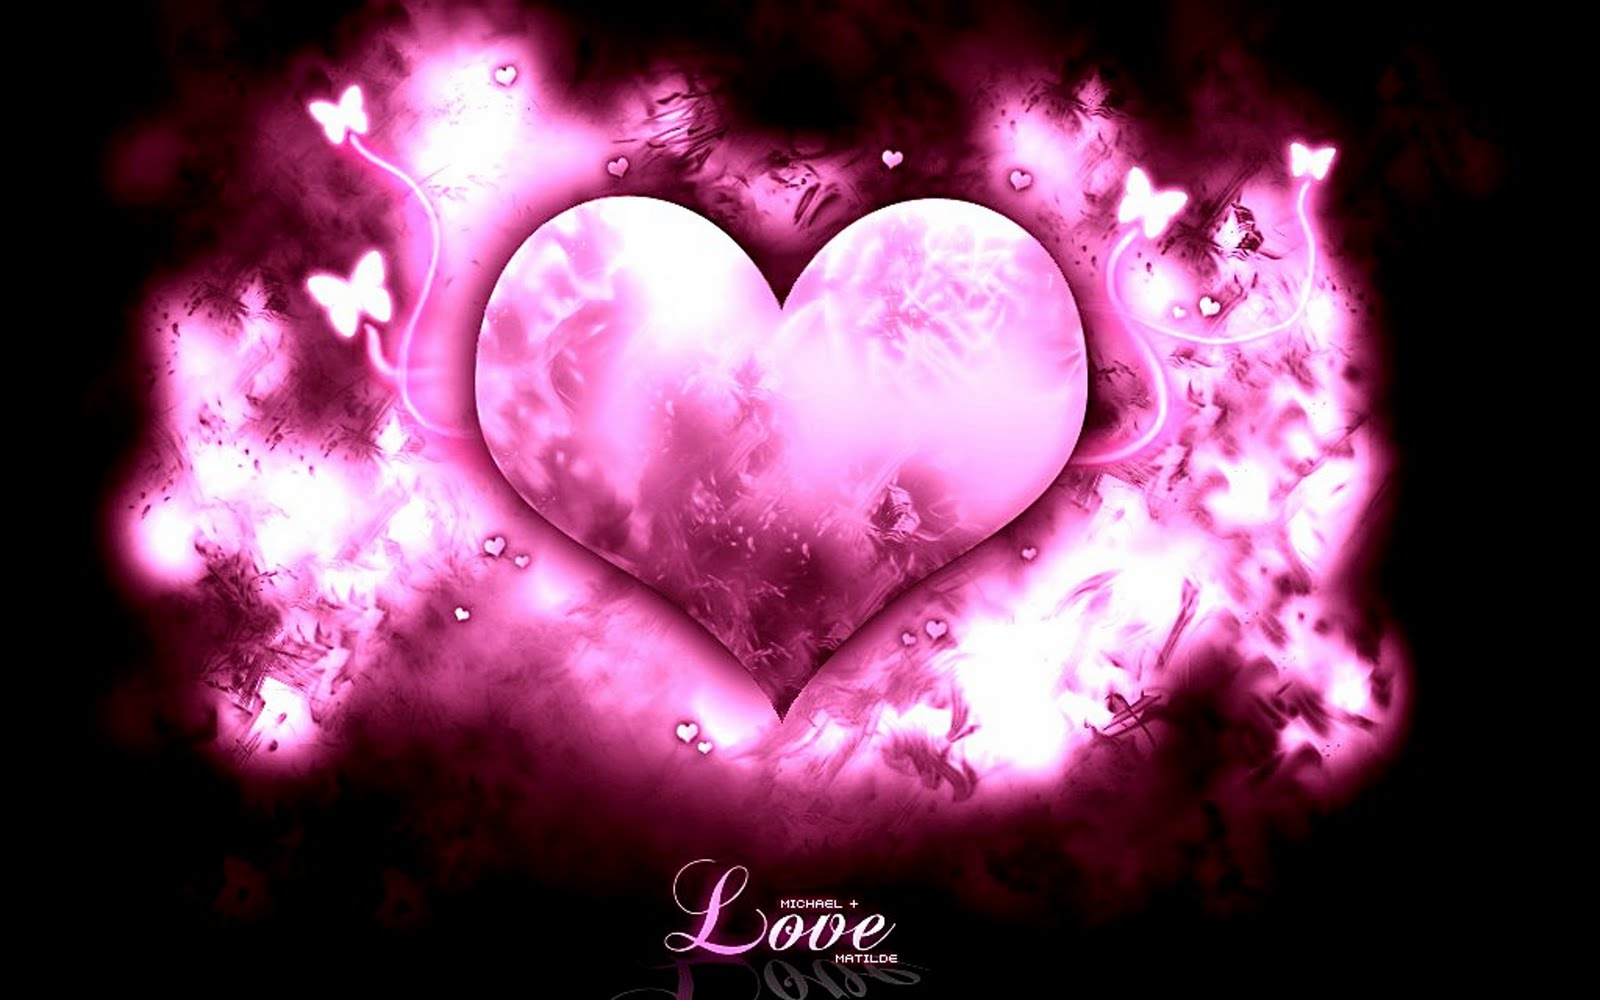 ... heart with pink shades and black background and love texture wallpaper